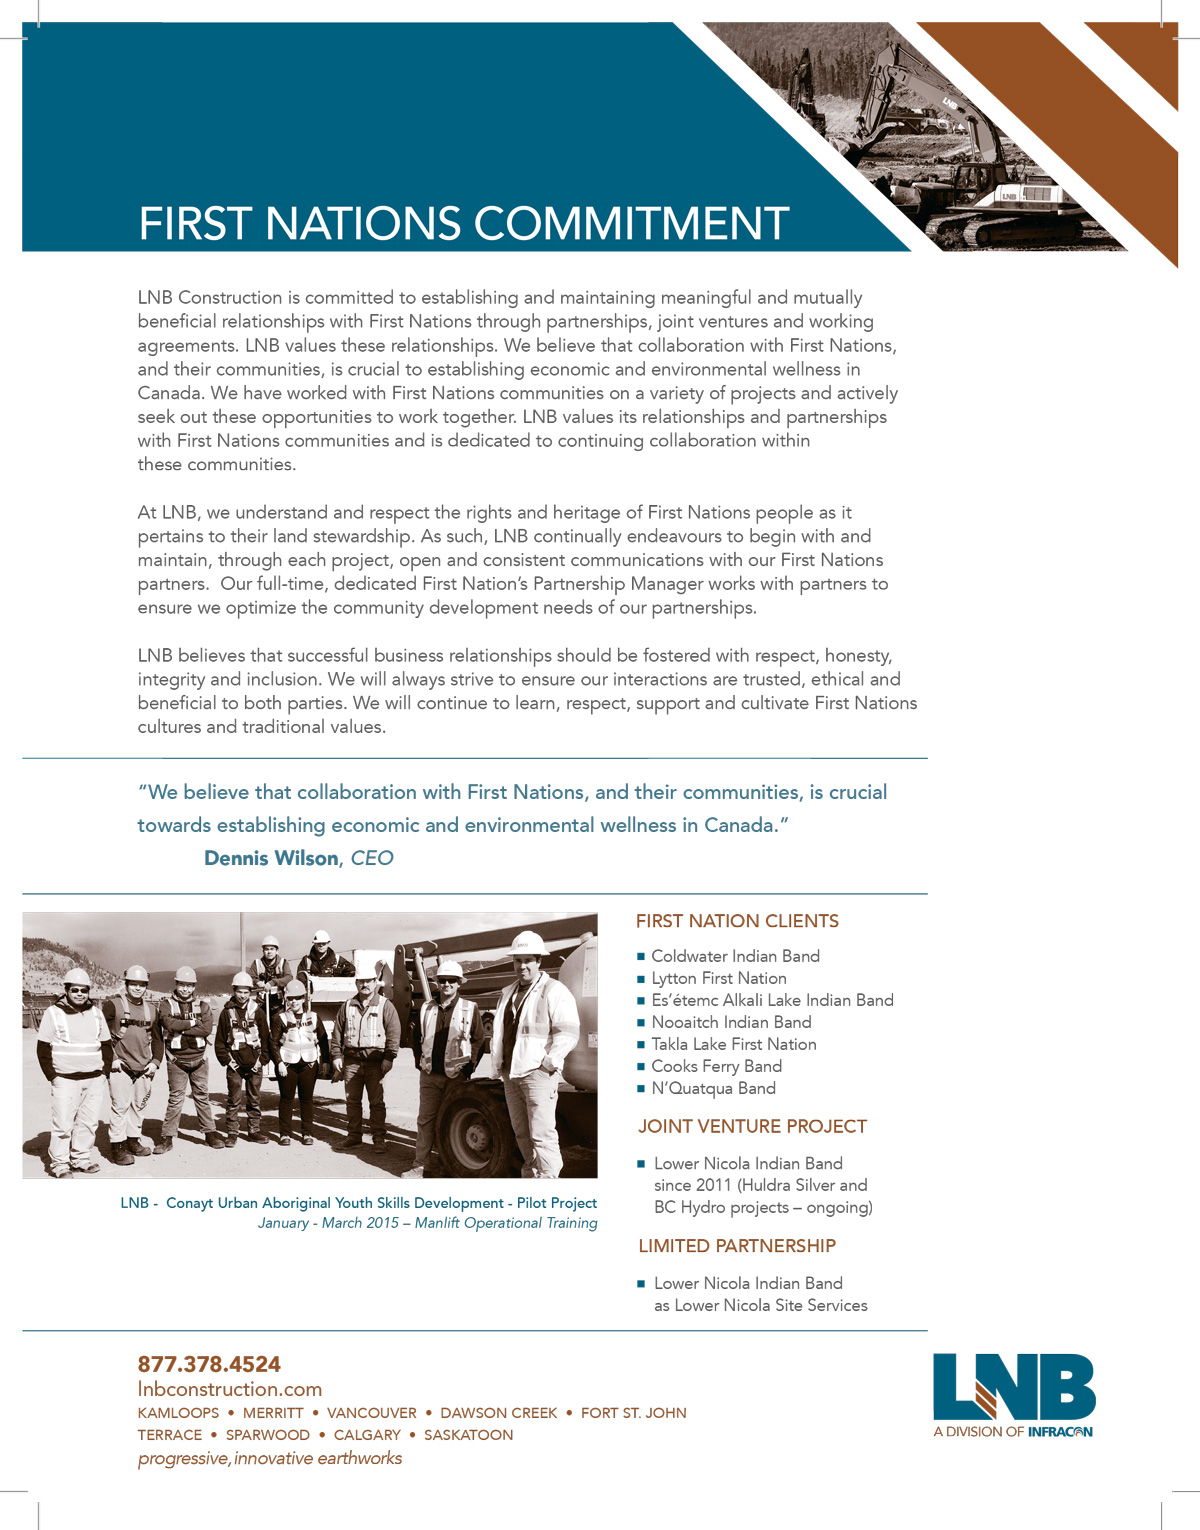 Intro to LNSS First Nations Commitment 1